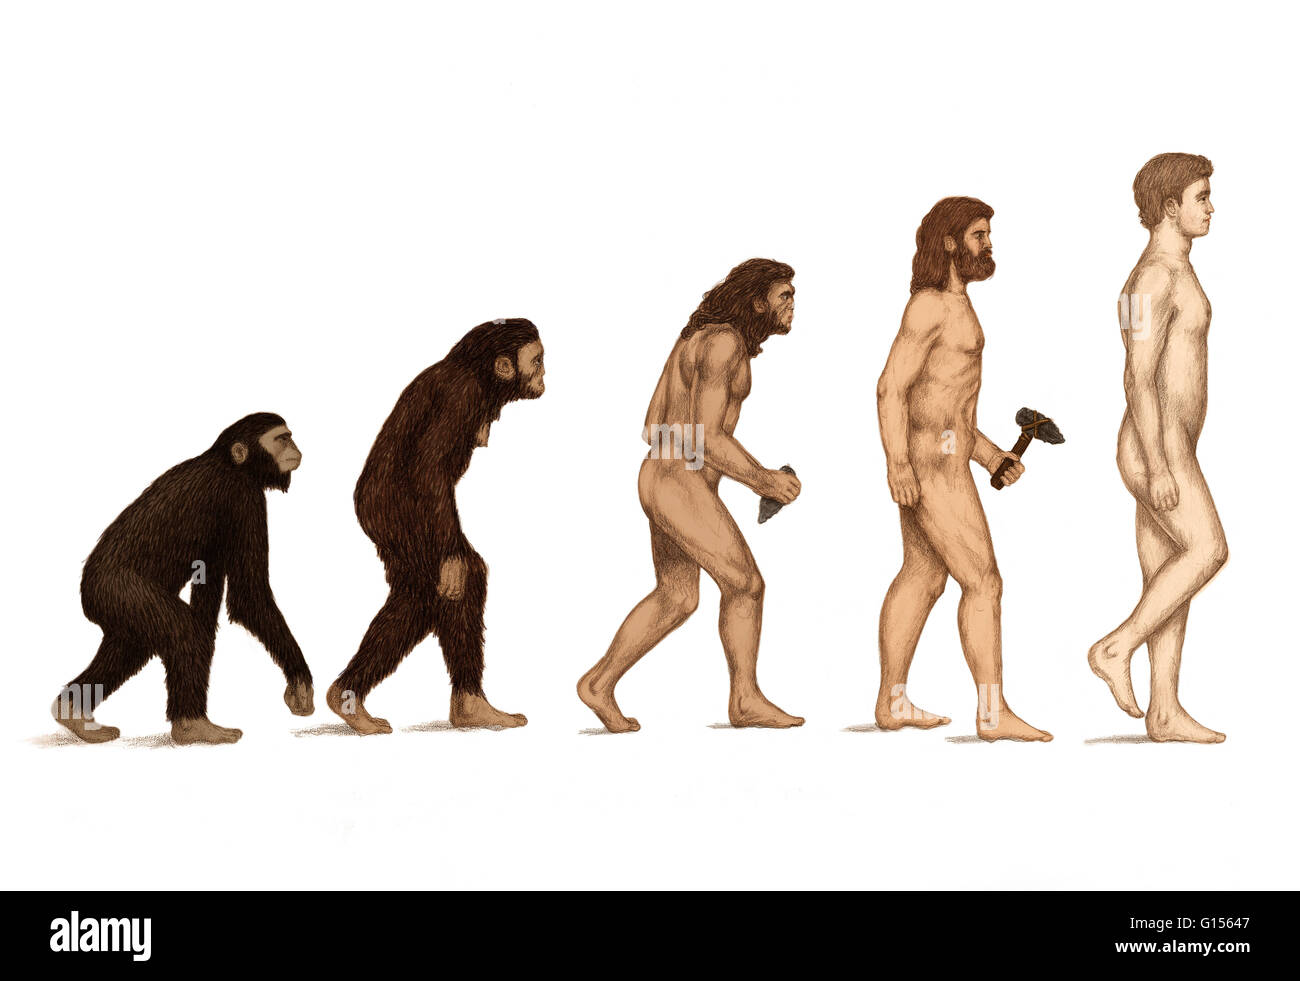 an essay on hominid species Homo erectus also showed a shortening of the forearm, making the limb proportions of this species quite close to that of modern humans it was the first hominid to show signs of an external nose with downward pointing nostrils.